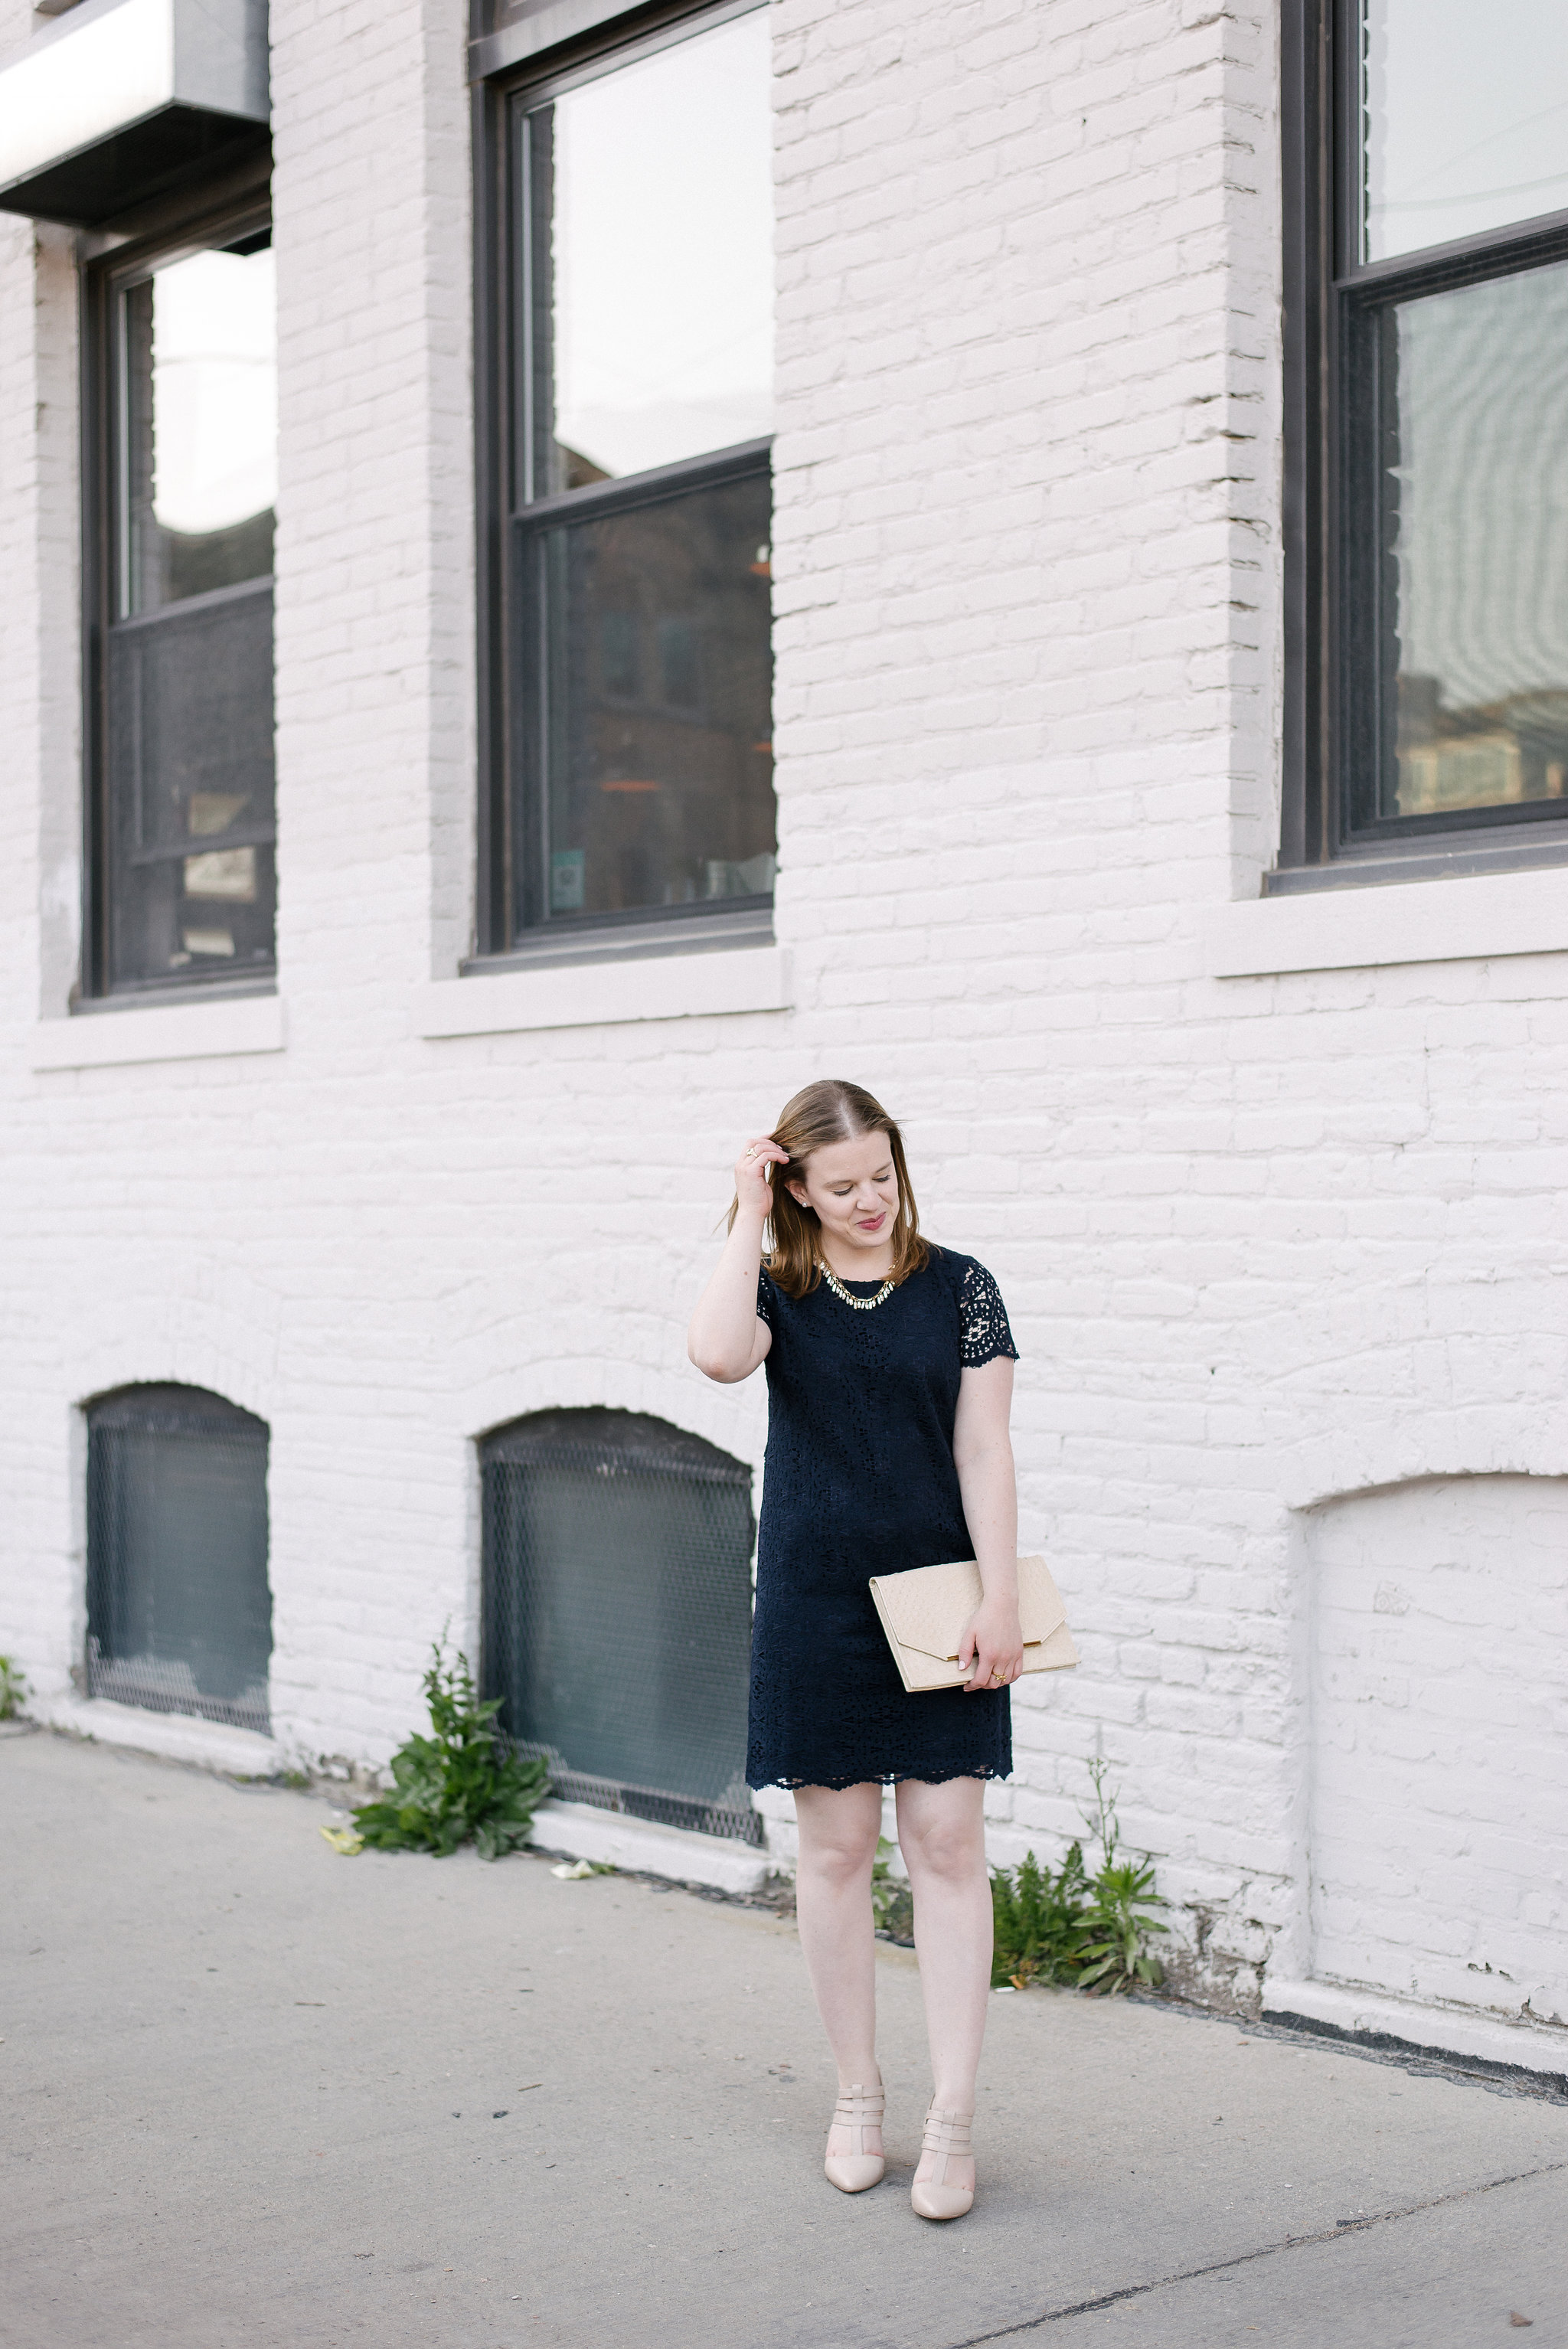 The Best Dresses to Wear to a Wedding | Something Good, @danaerinw , women, fashion, clothing, styles, clothes, women's fashion, wedding guest, wedding dresses, wedding guest dresses, summer styles, ann taylor lace shirt dress, ann taylor navy dress, petite dress, petite fashion, petite style